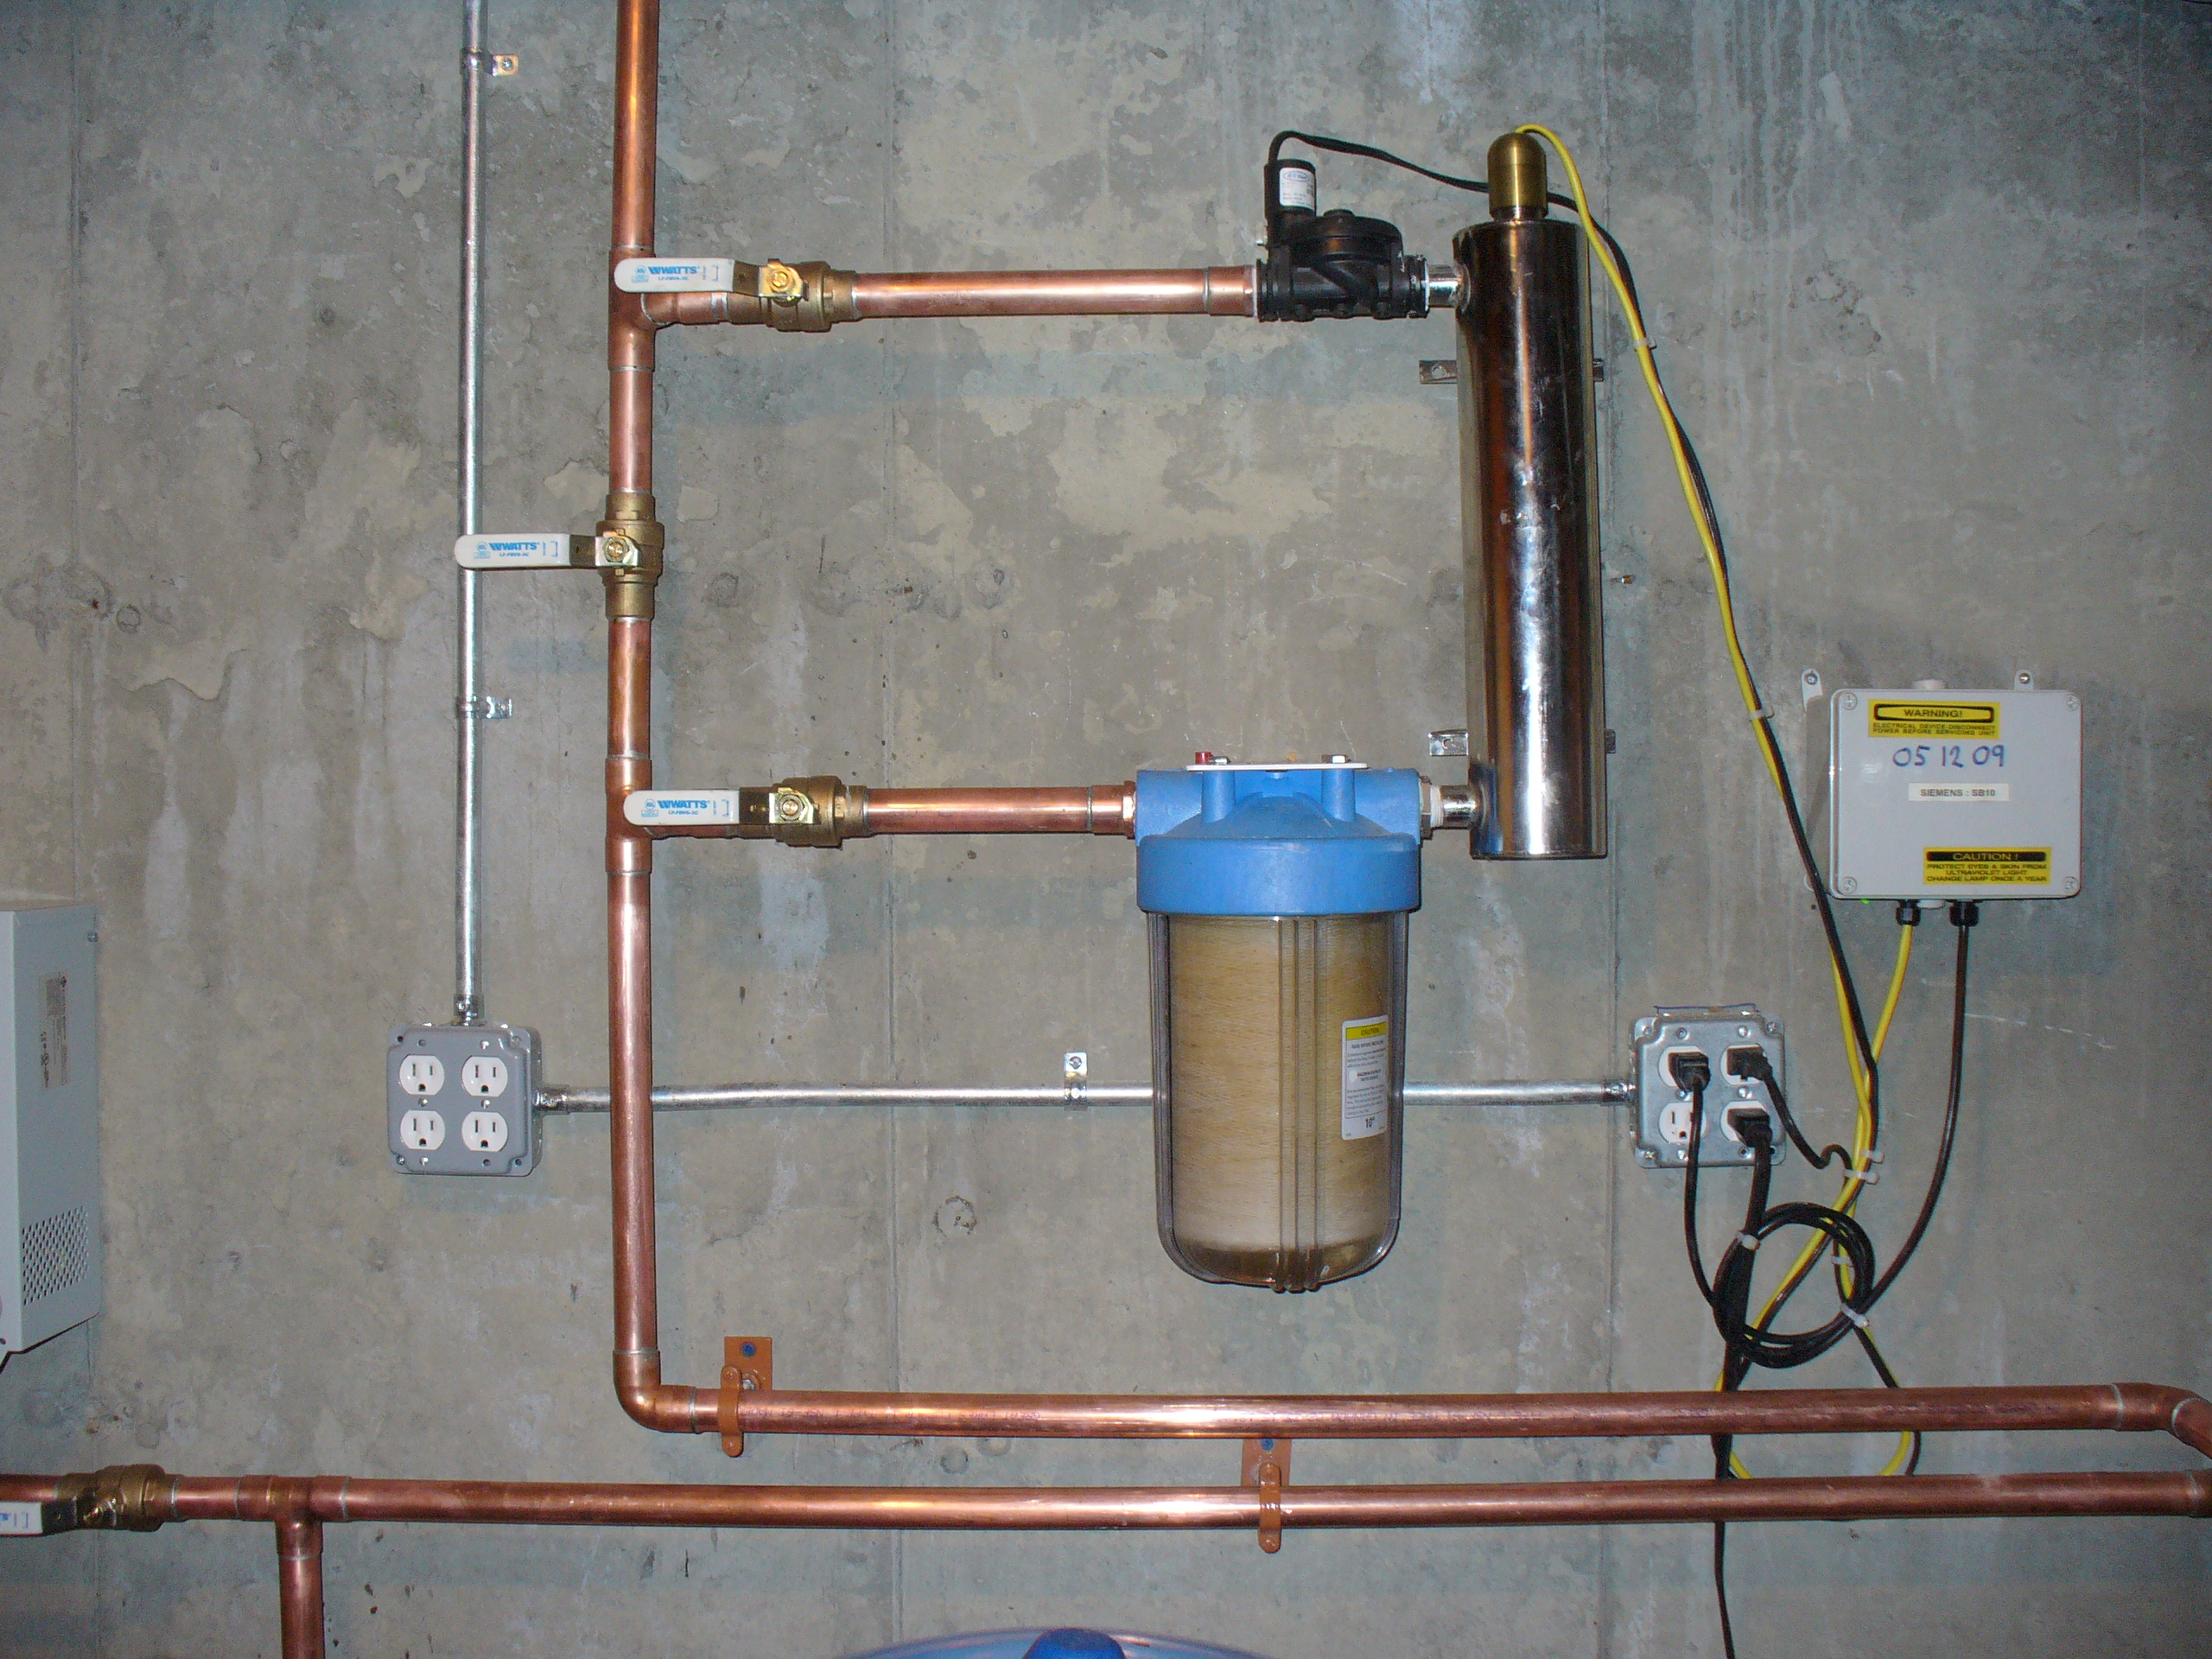 Werner Well Amp Pump Service Llc Specializes In Different